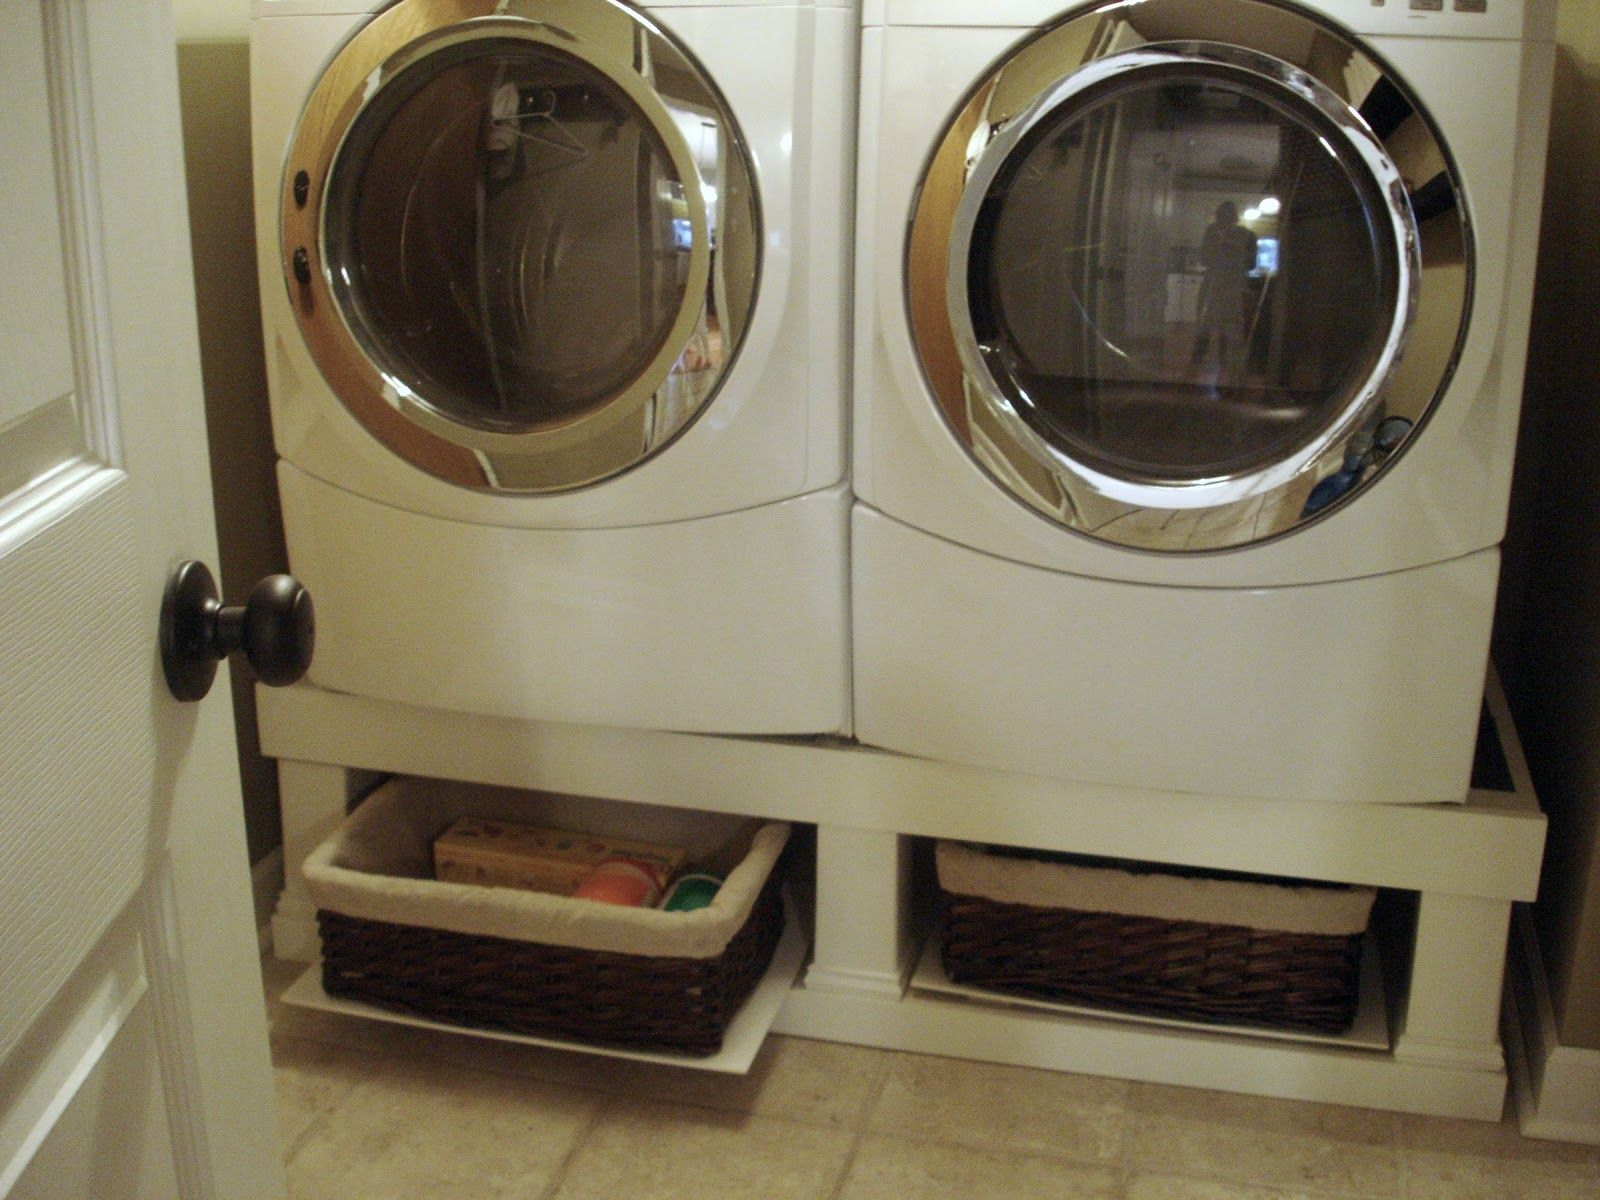 Washer Dryer Stand For Laundry Room Washer And Dryer Pedestal